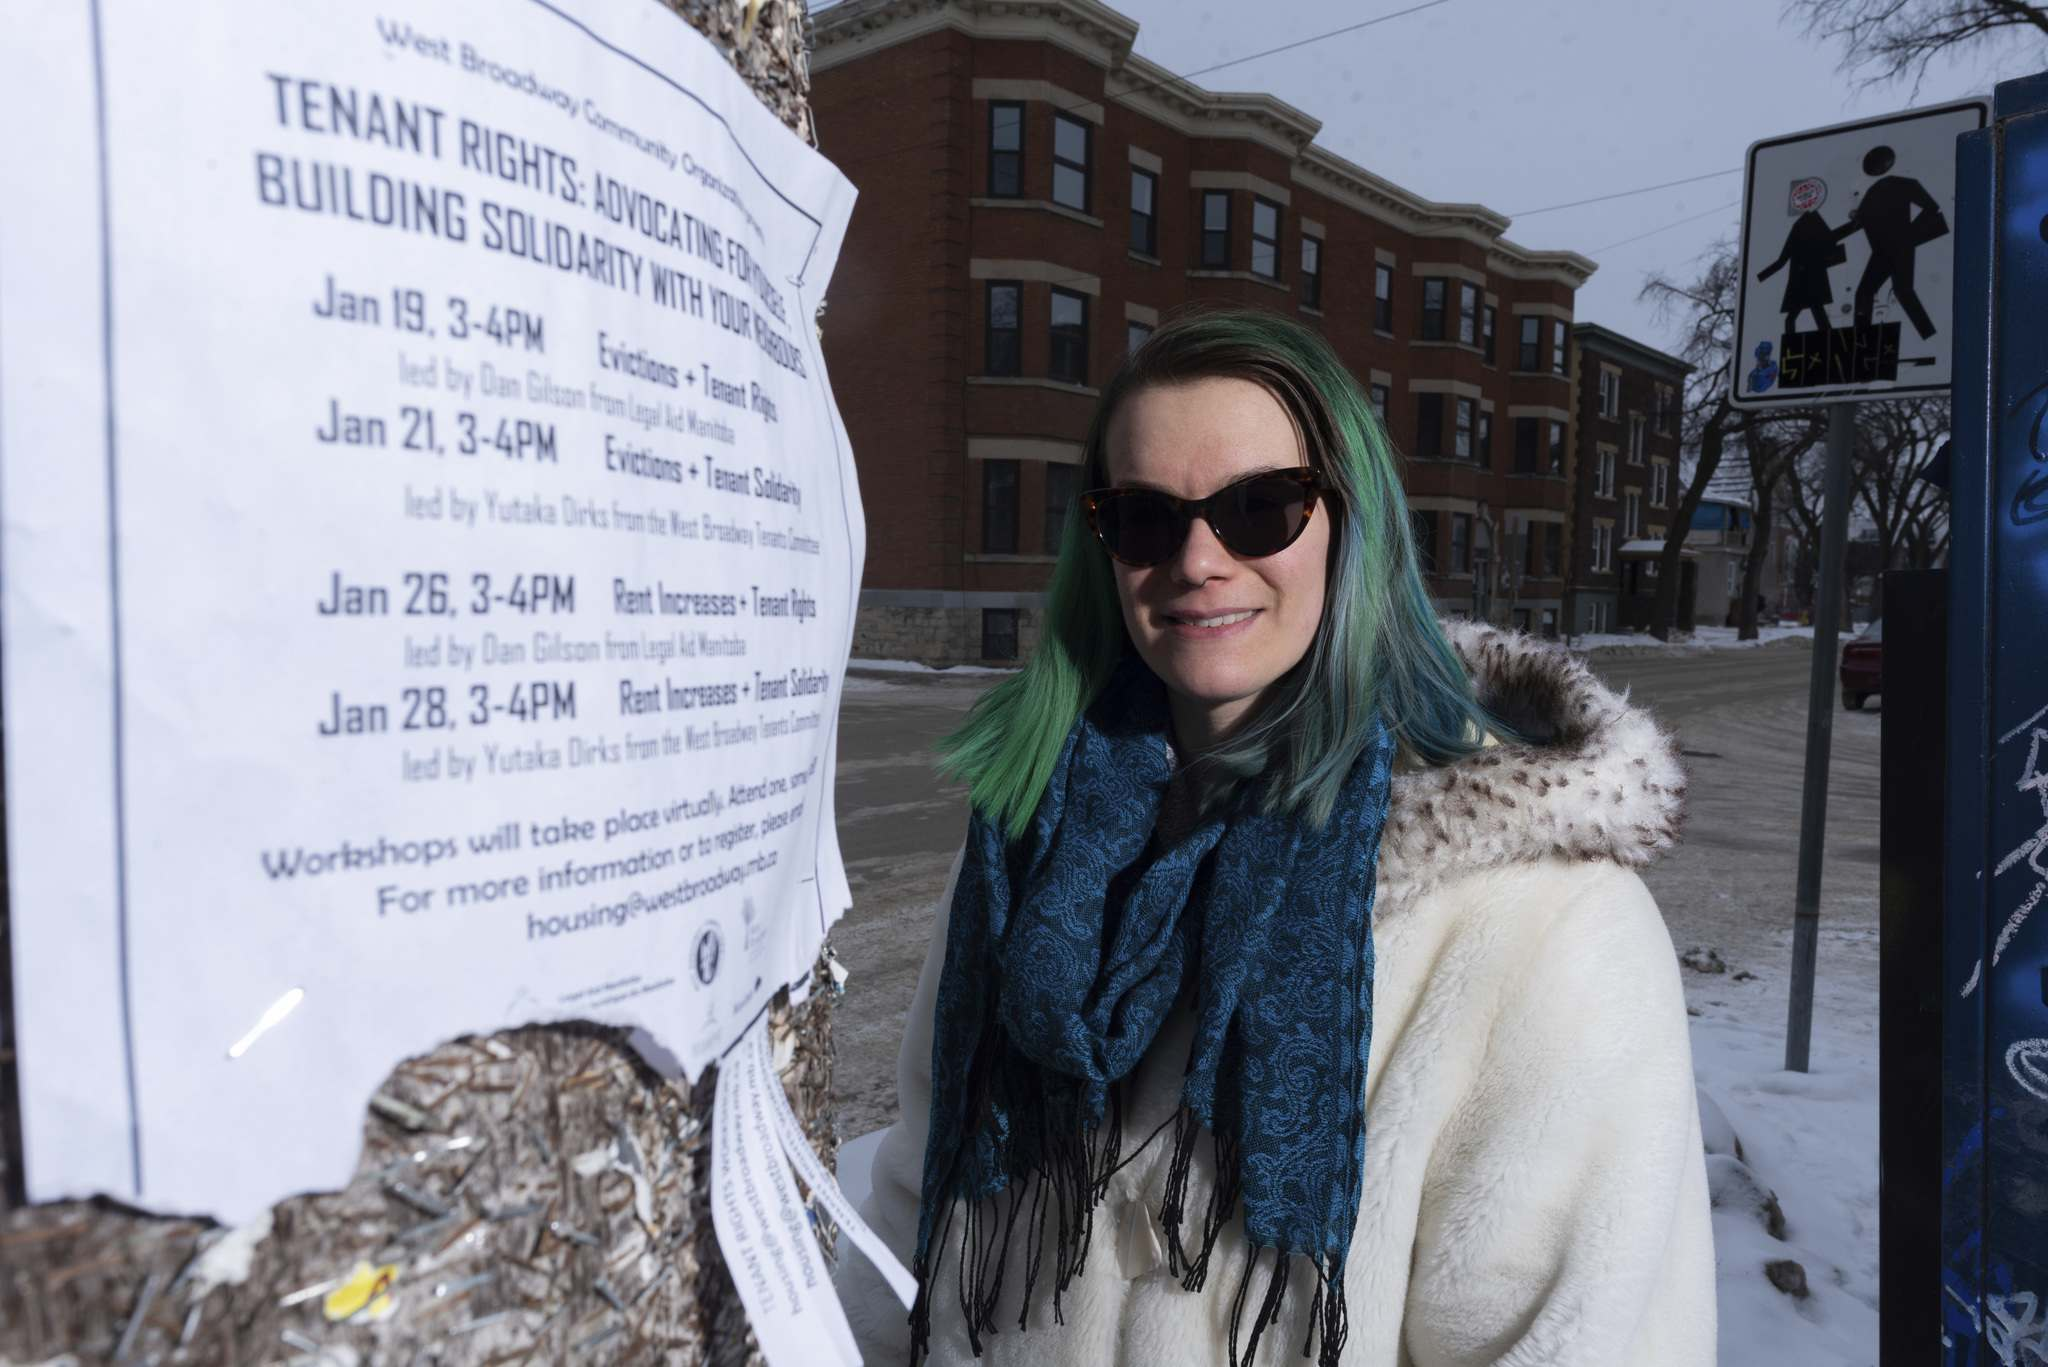 JESSE BOILY / WINNIPEG FREE PRESS</p><p>West Broadway Community Organization housing co-ordinator Ella Rockar recommends tenants learn as much as possible about the regulations regarding eviction and what protections are in place for renters.</p>